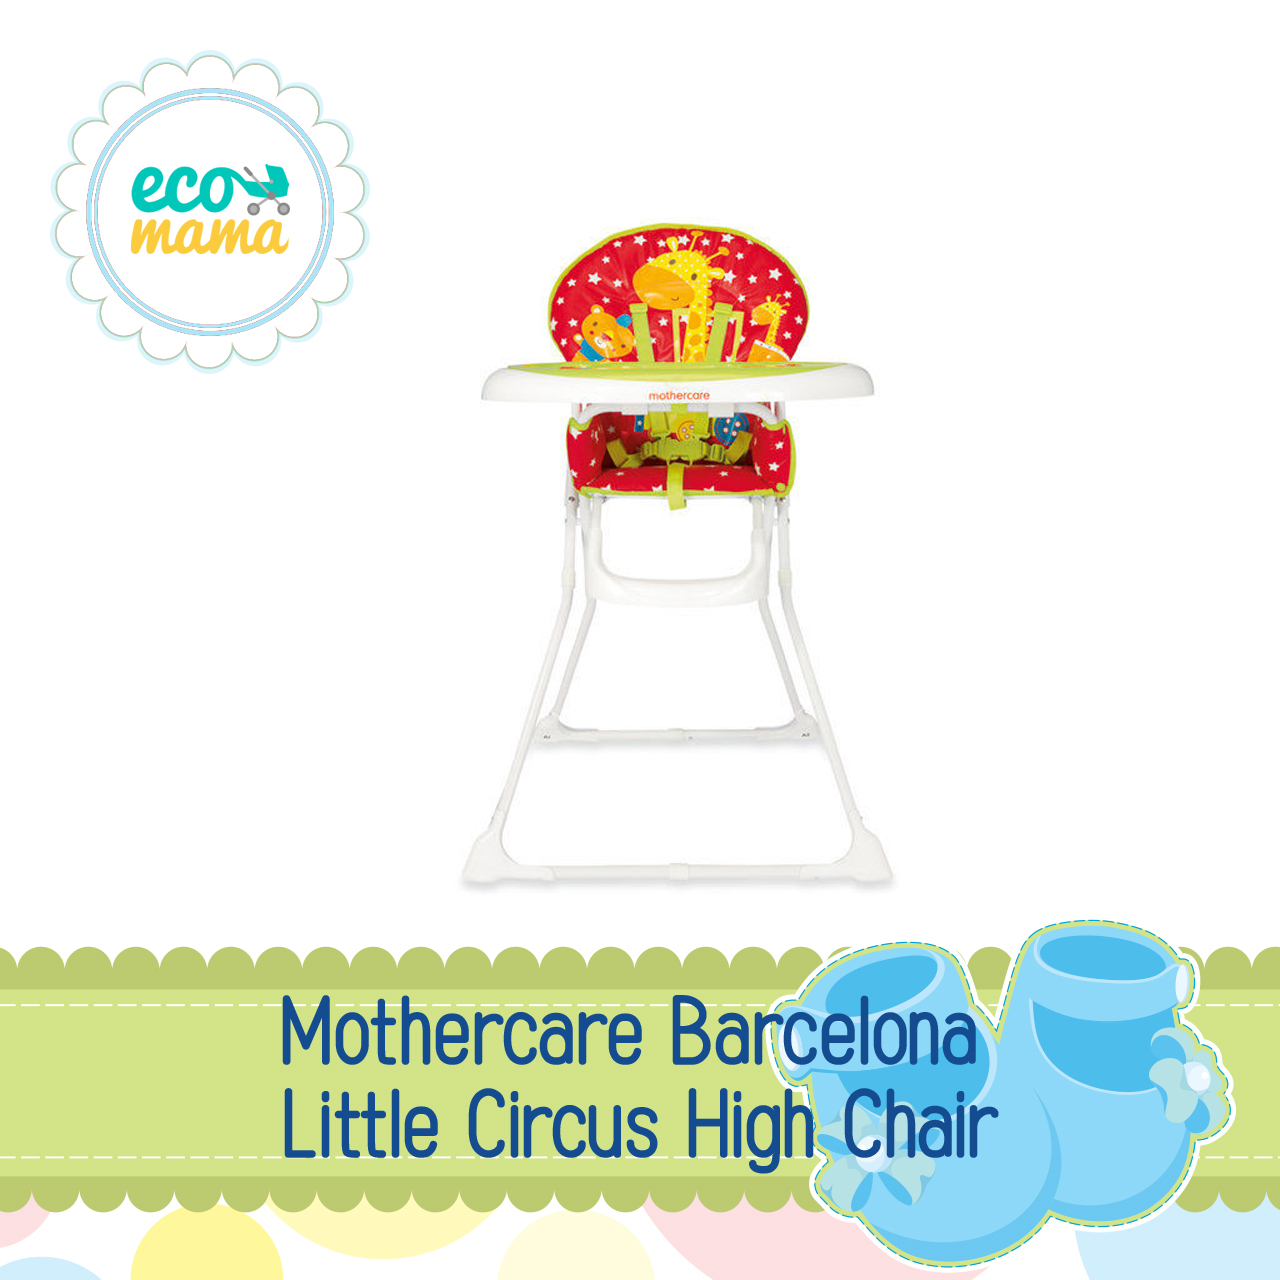 Mothercare Barcelona Little Circus Highchair